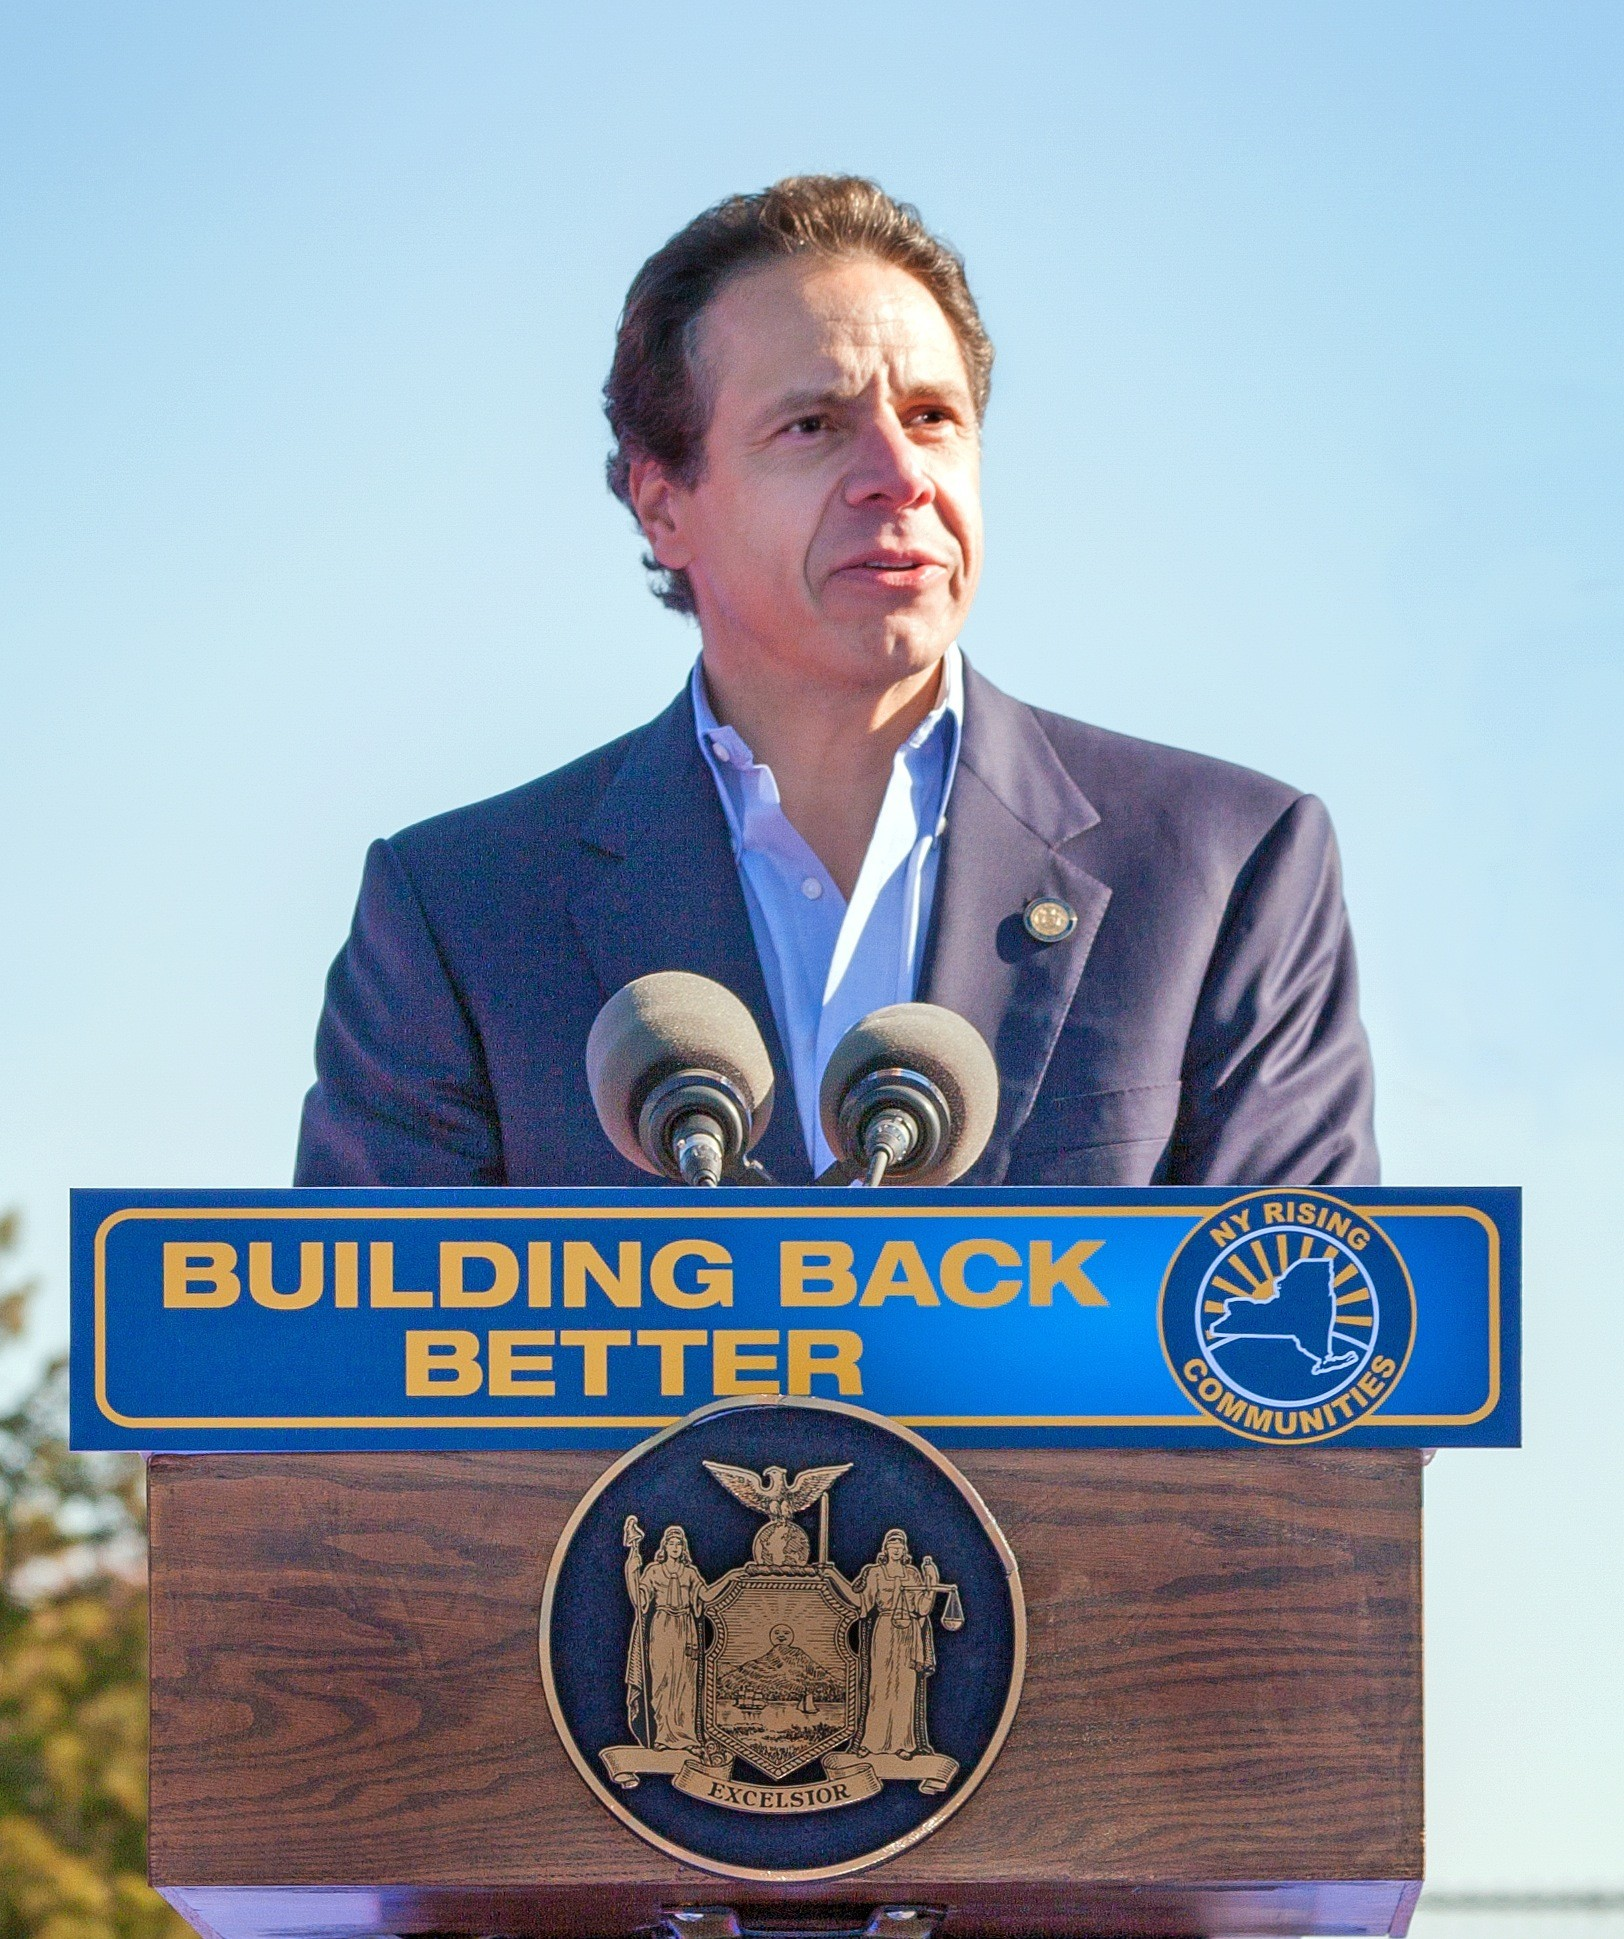 Gov. Andrew Cuomo, pictured at a press conference in Long Beach last November, approved a $12 million bond measure that allows the city to cover costs associated with Sandy and a 2011-12 deficit.